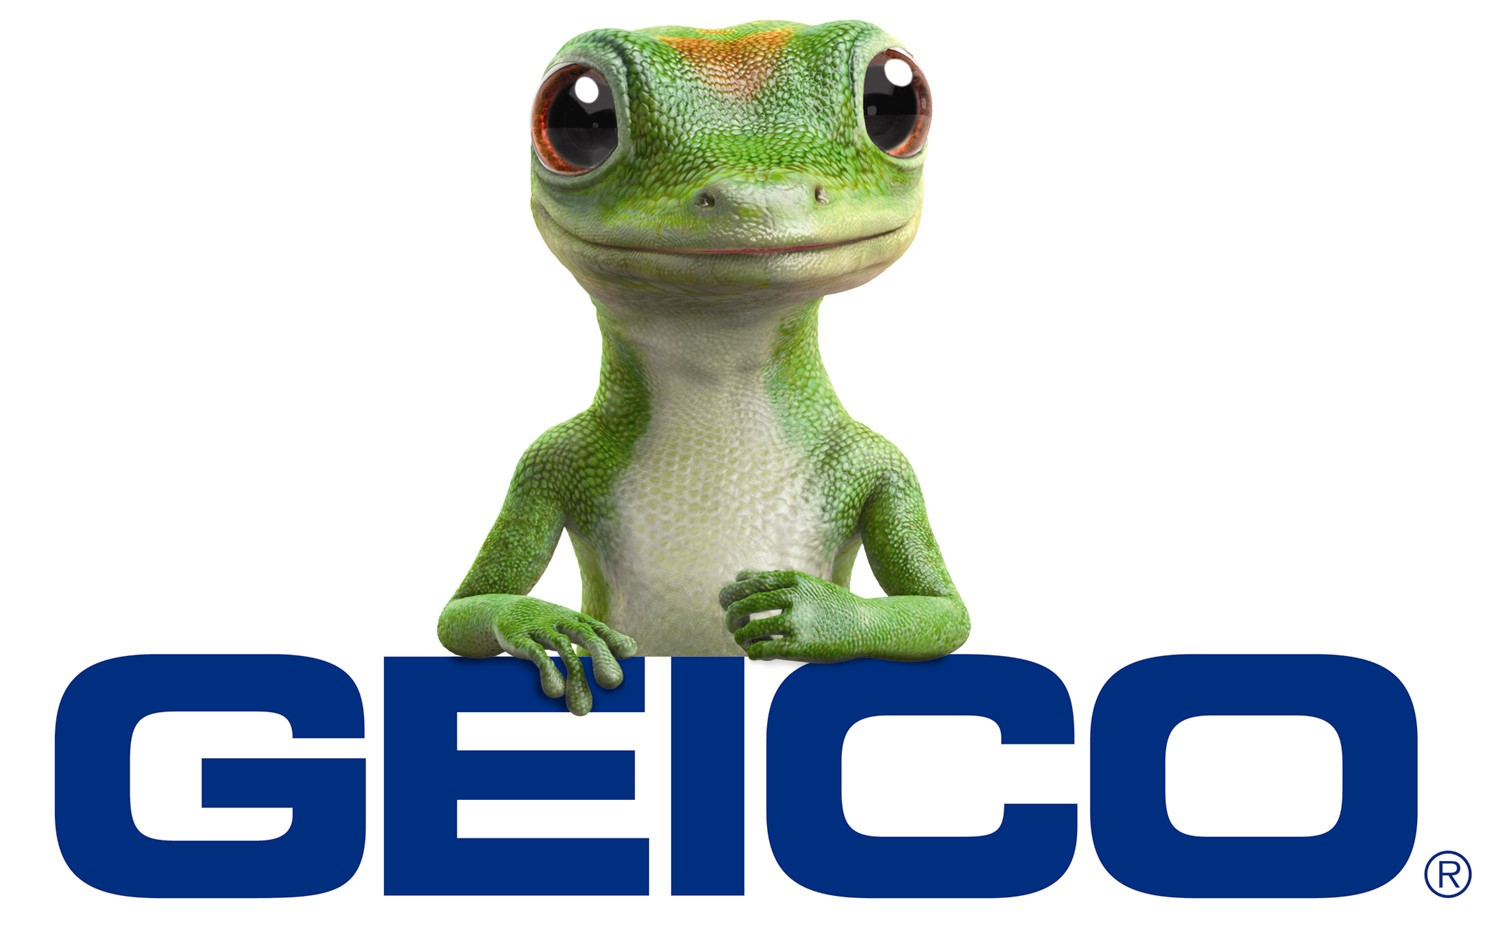 1500x935 The Multiple Mascots Of Geico Mhb Weekly By The Students,